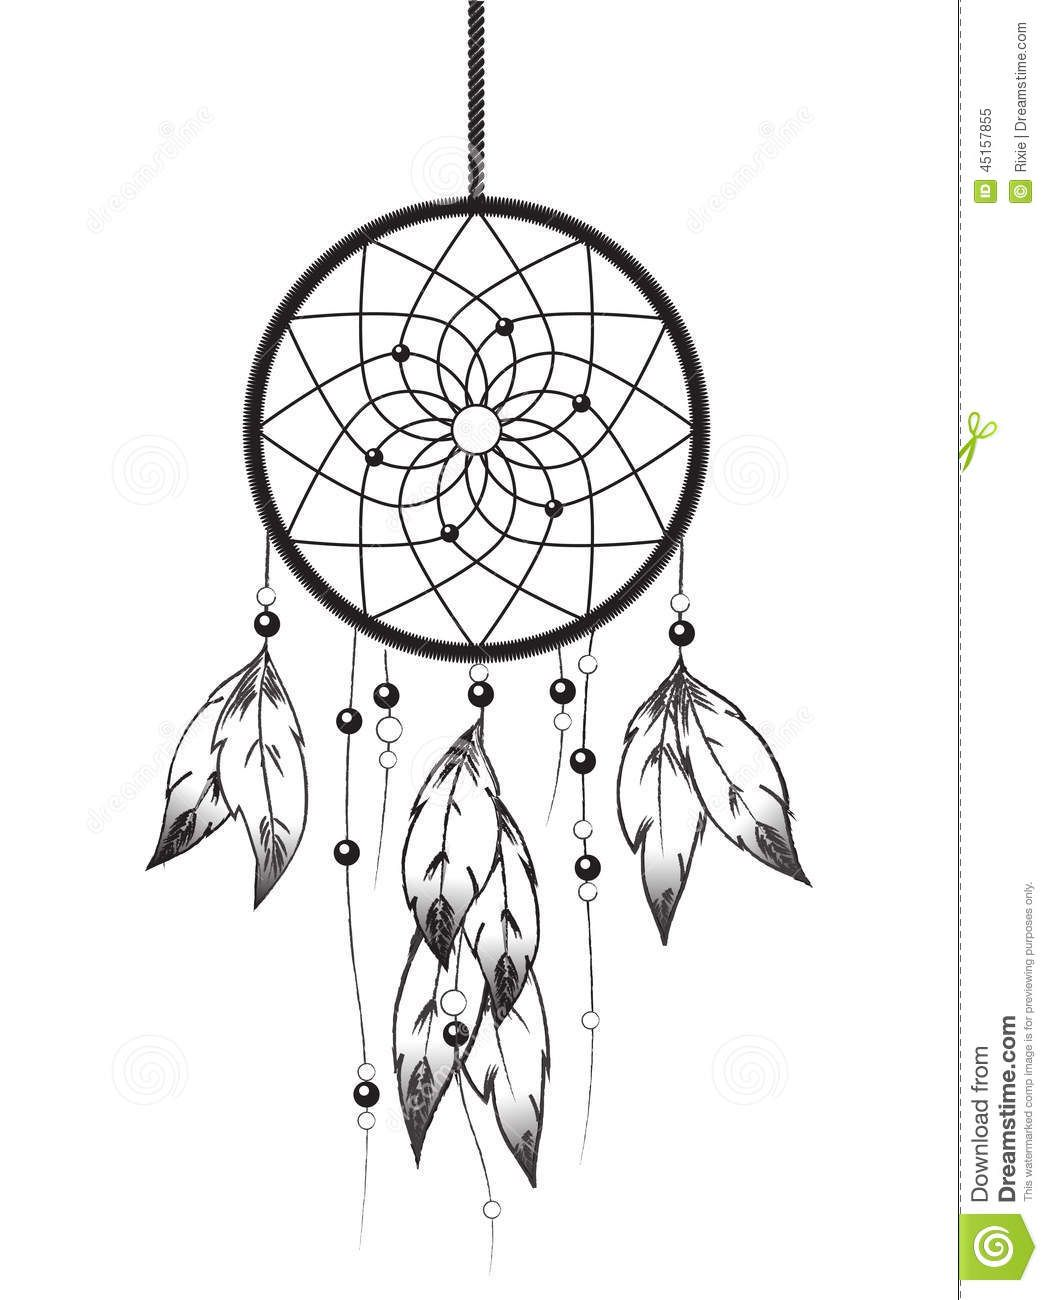 afficher l 39 image d 39 origine dreamcatchers pinterest images attrape et tatouages. Black Bedroom Furniture Sets. Home Design Ideas